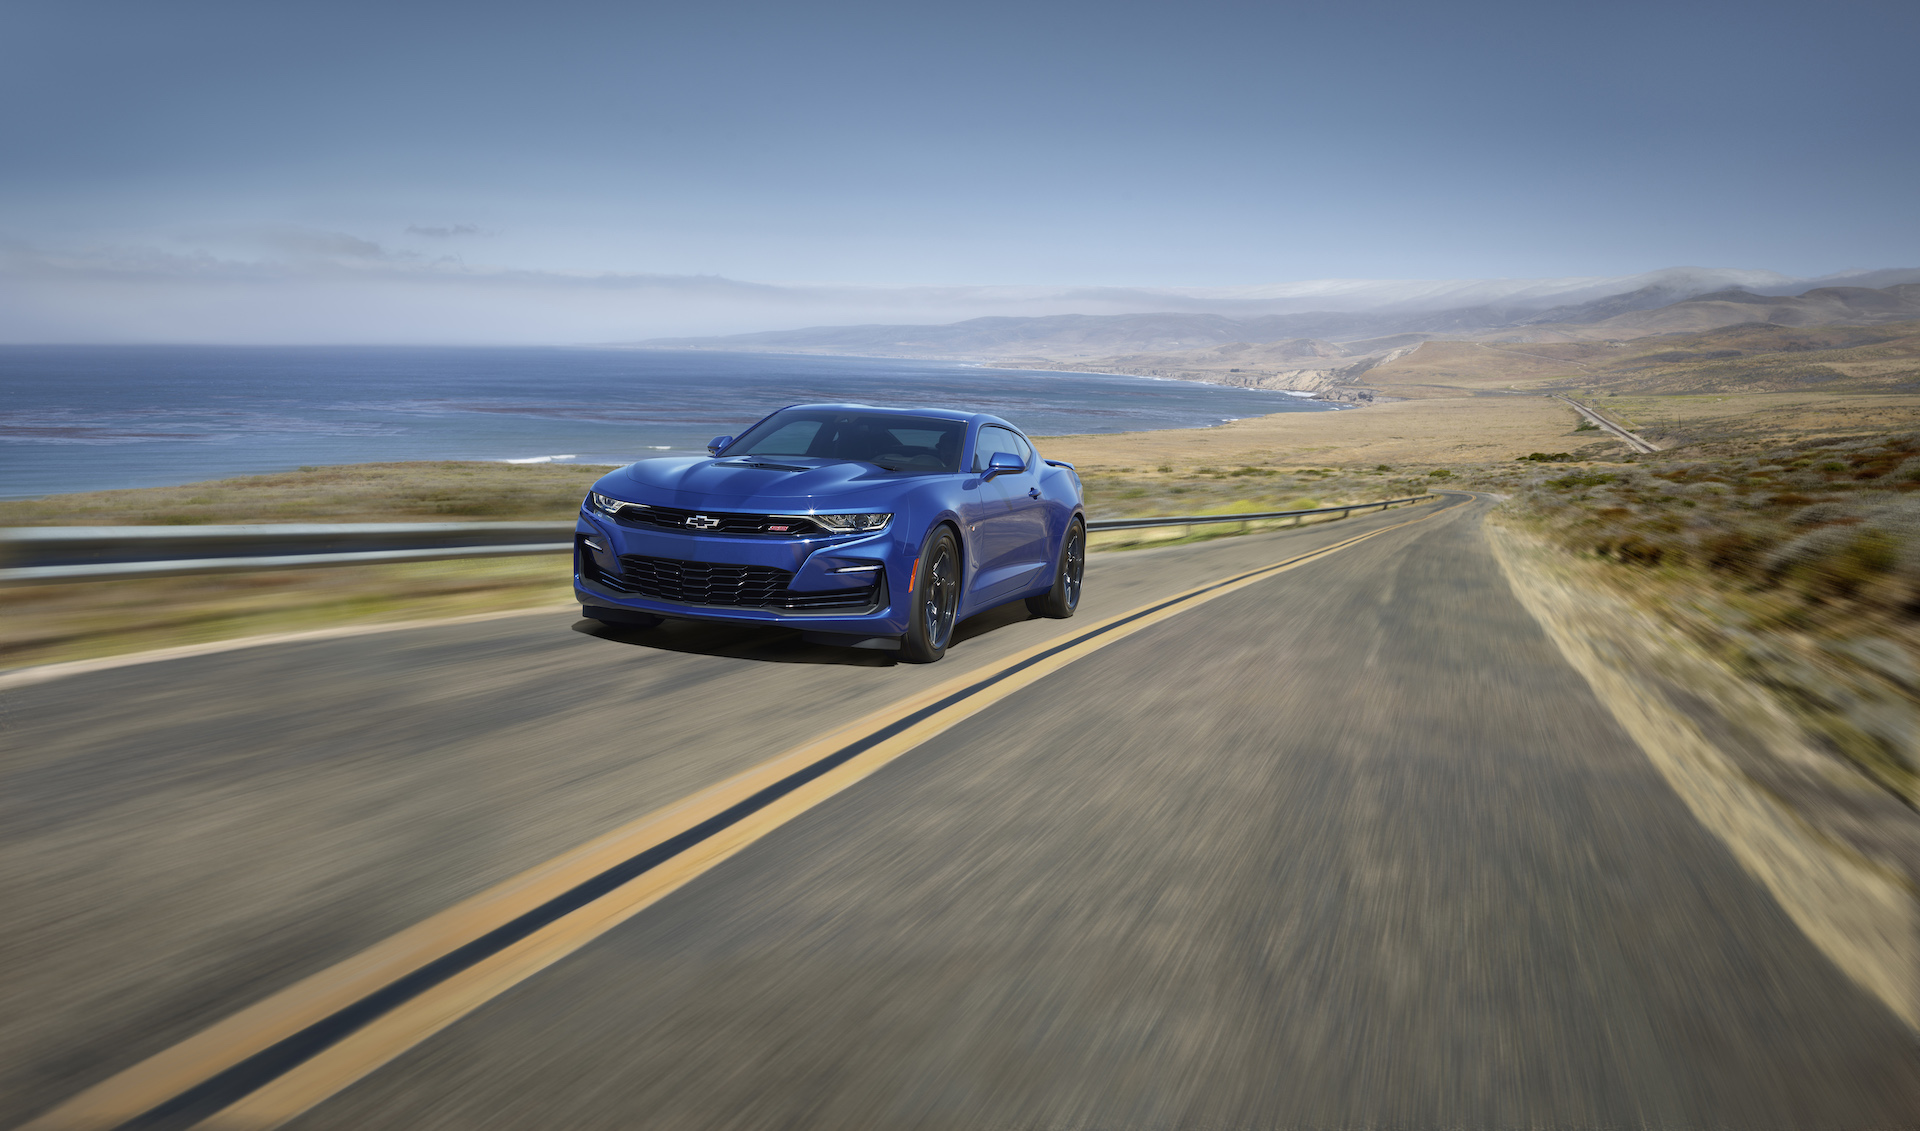 2020 Chevrolet Camaro Gets A Nose Job, Value Upgrades